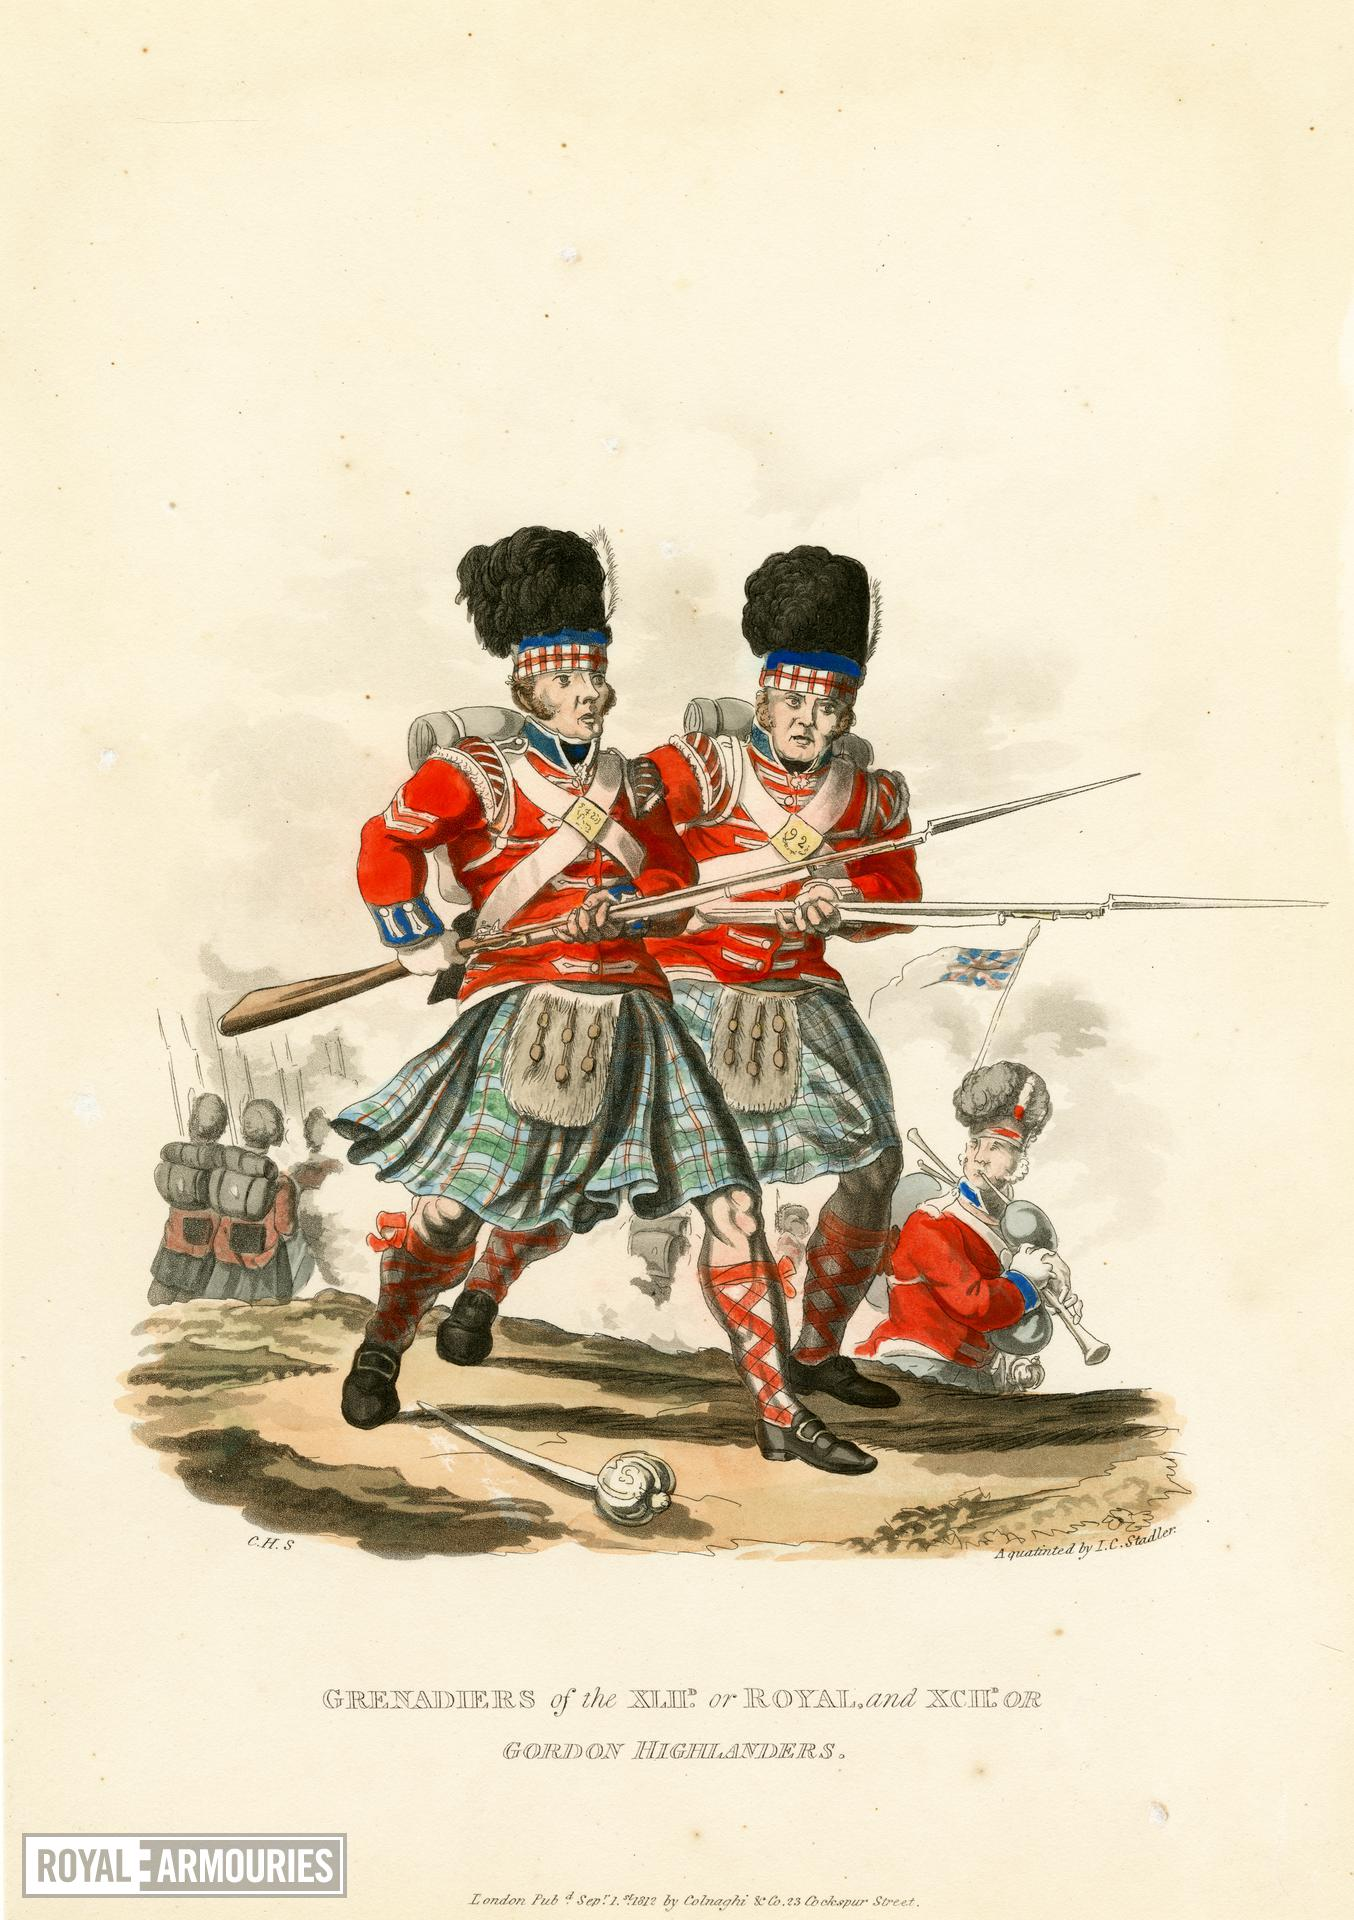 Grenadiers of the 42nd or Royal and 92nd or Gordon Highlanders, 1812. Aquatint by J C Stadler after Charles Hamilton Smith. London, published 1st September 1812 by Colnaghi & Co. 23 Cockspur Street.